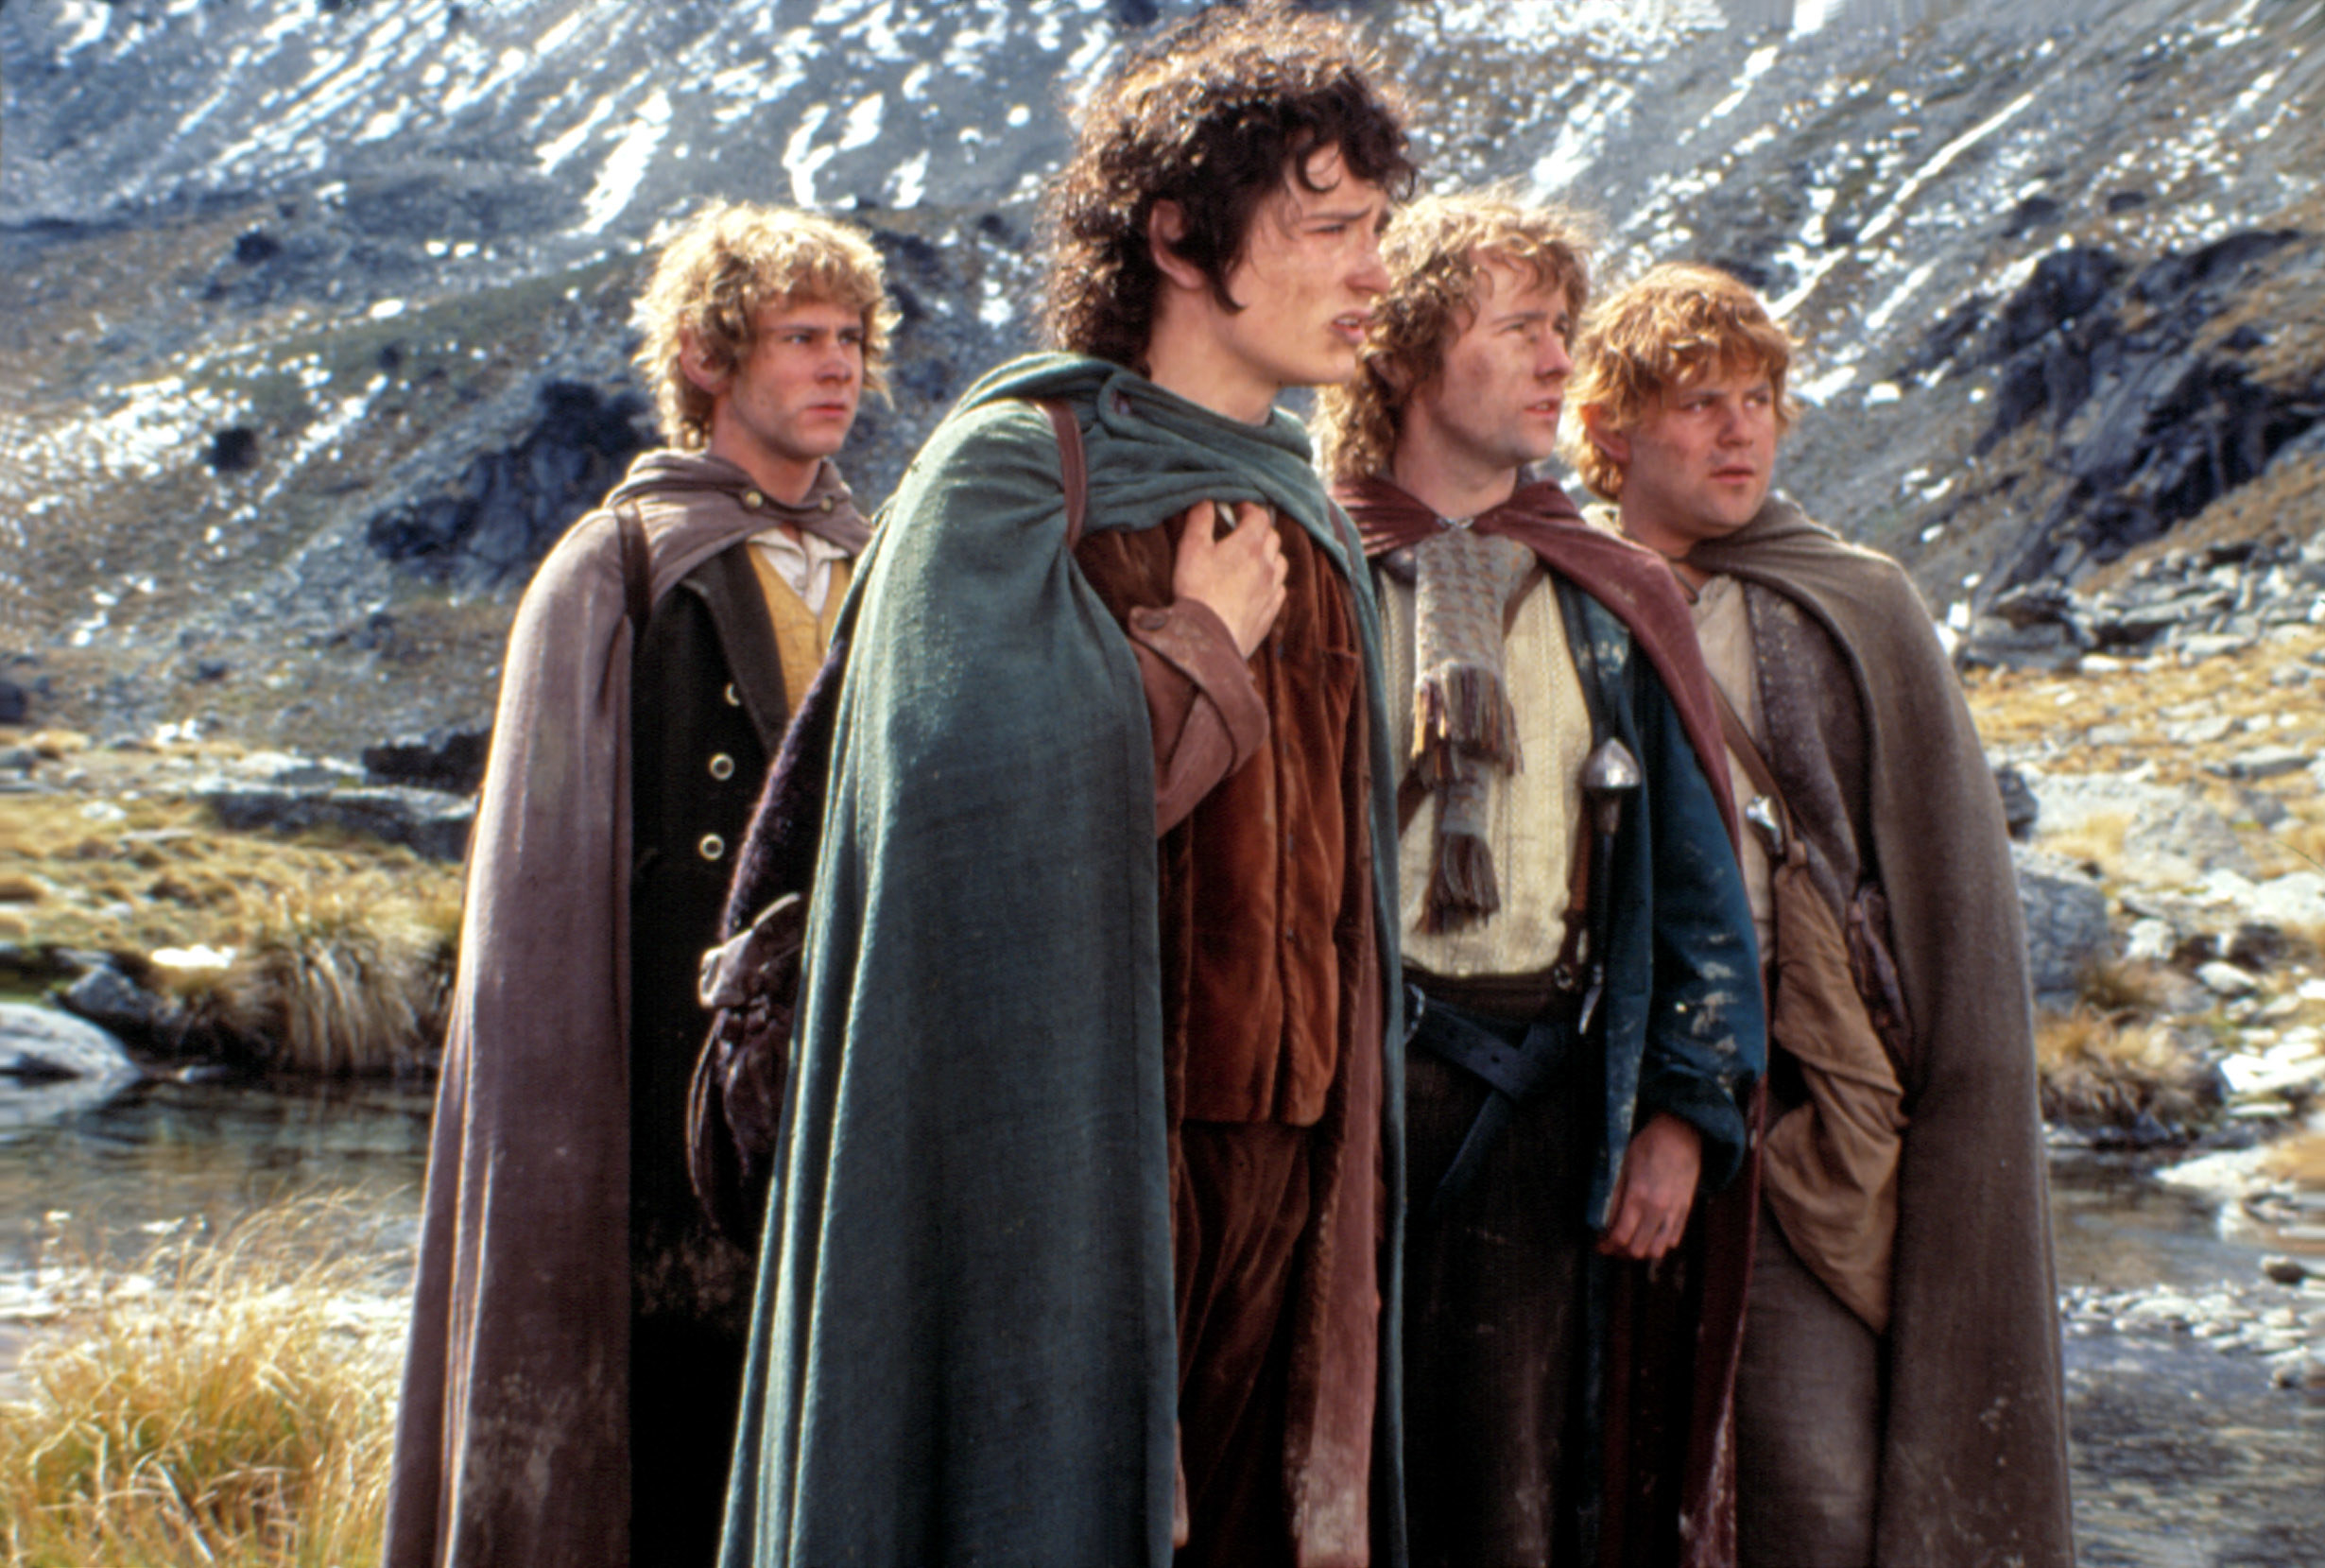 """Dominic Monaghan, Elijah Wood, Billy Boyd, and Sean Astin in the first """"Lord of the Rings"""" movie: """"Fellowship of the Ring"""""""